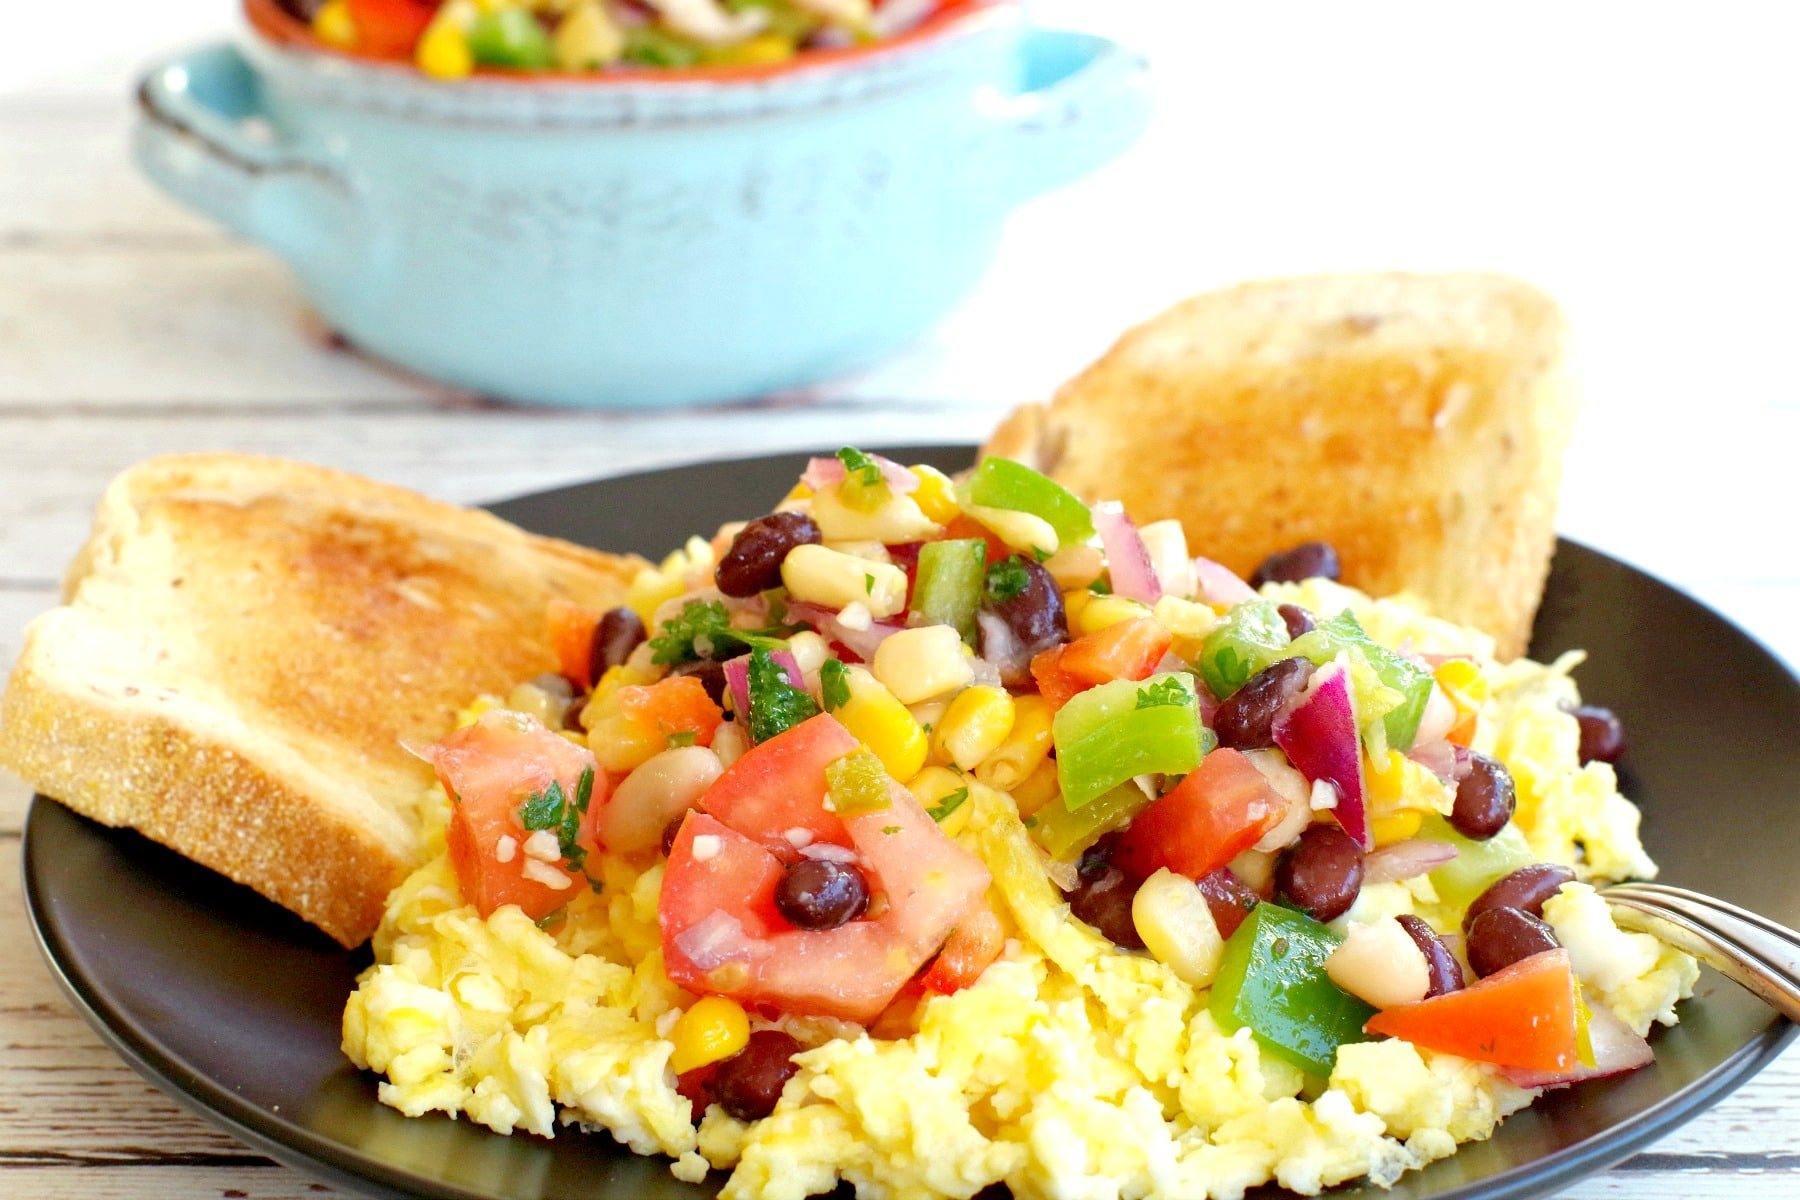 cowboy caviar dip on top of scrambled eggs with toast and dish of dip in the background